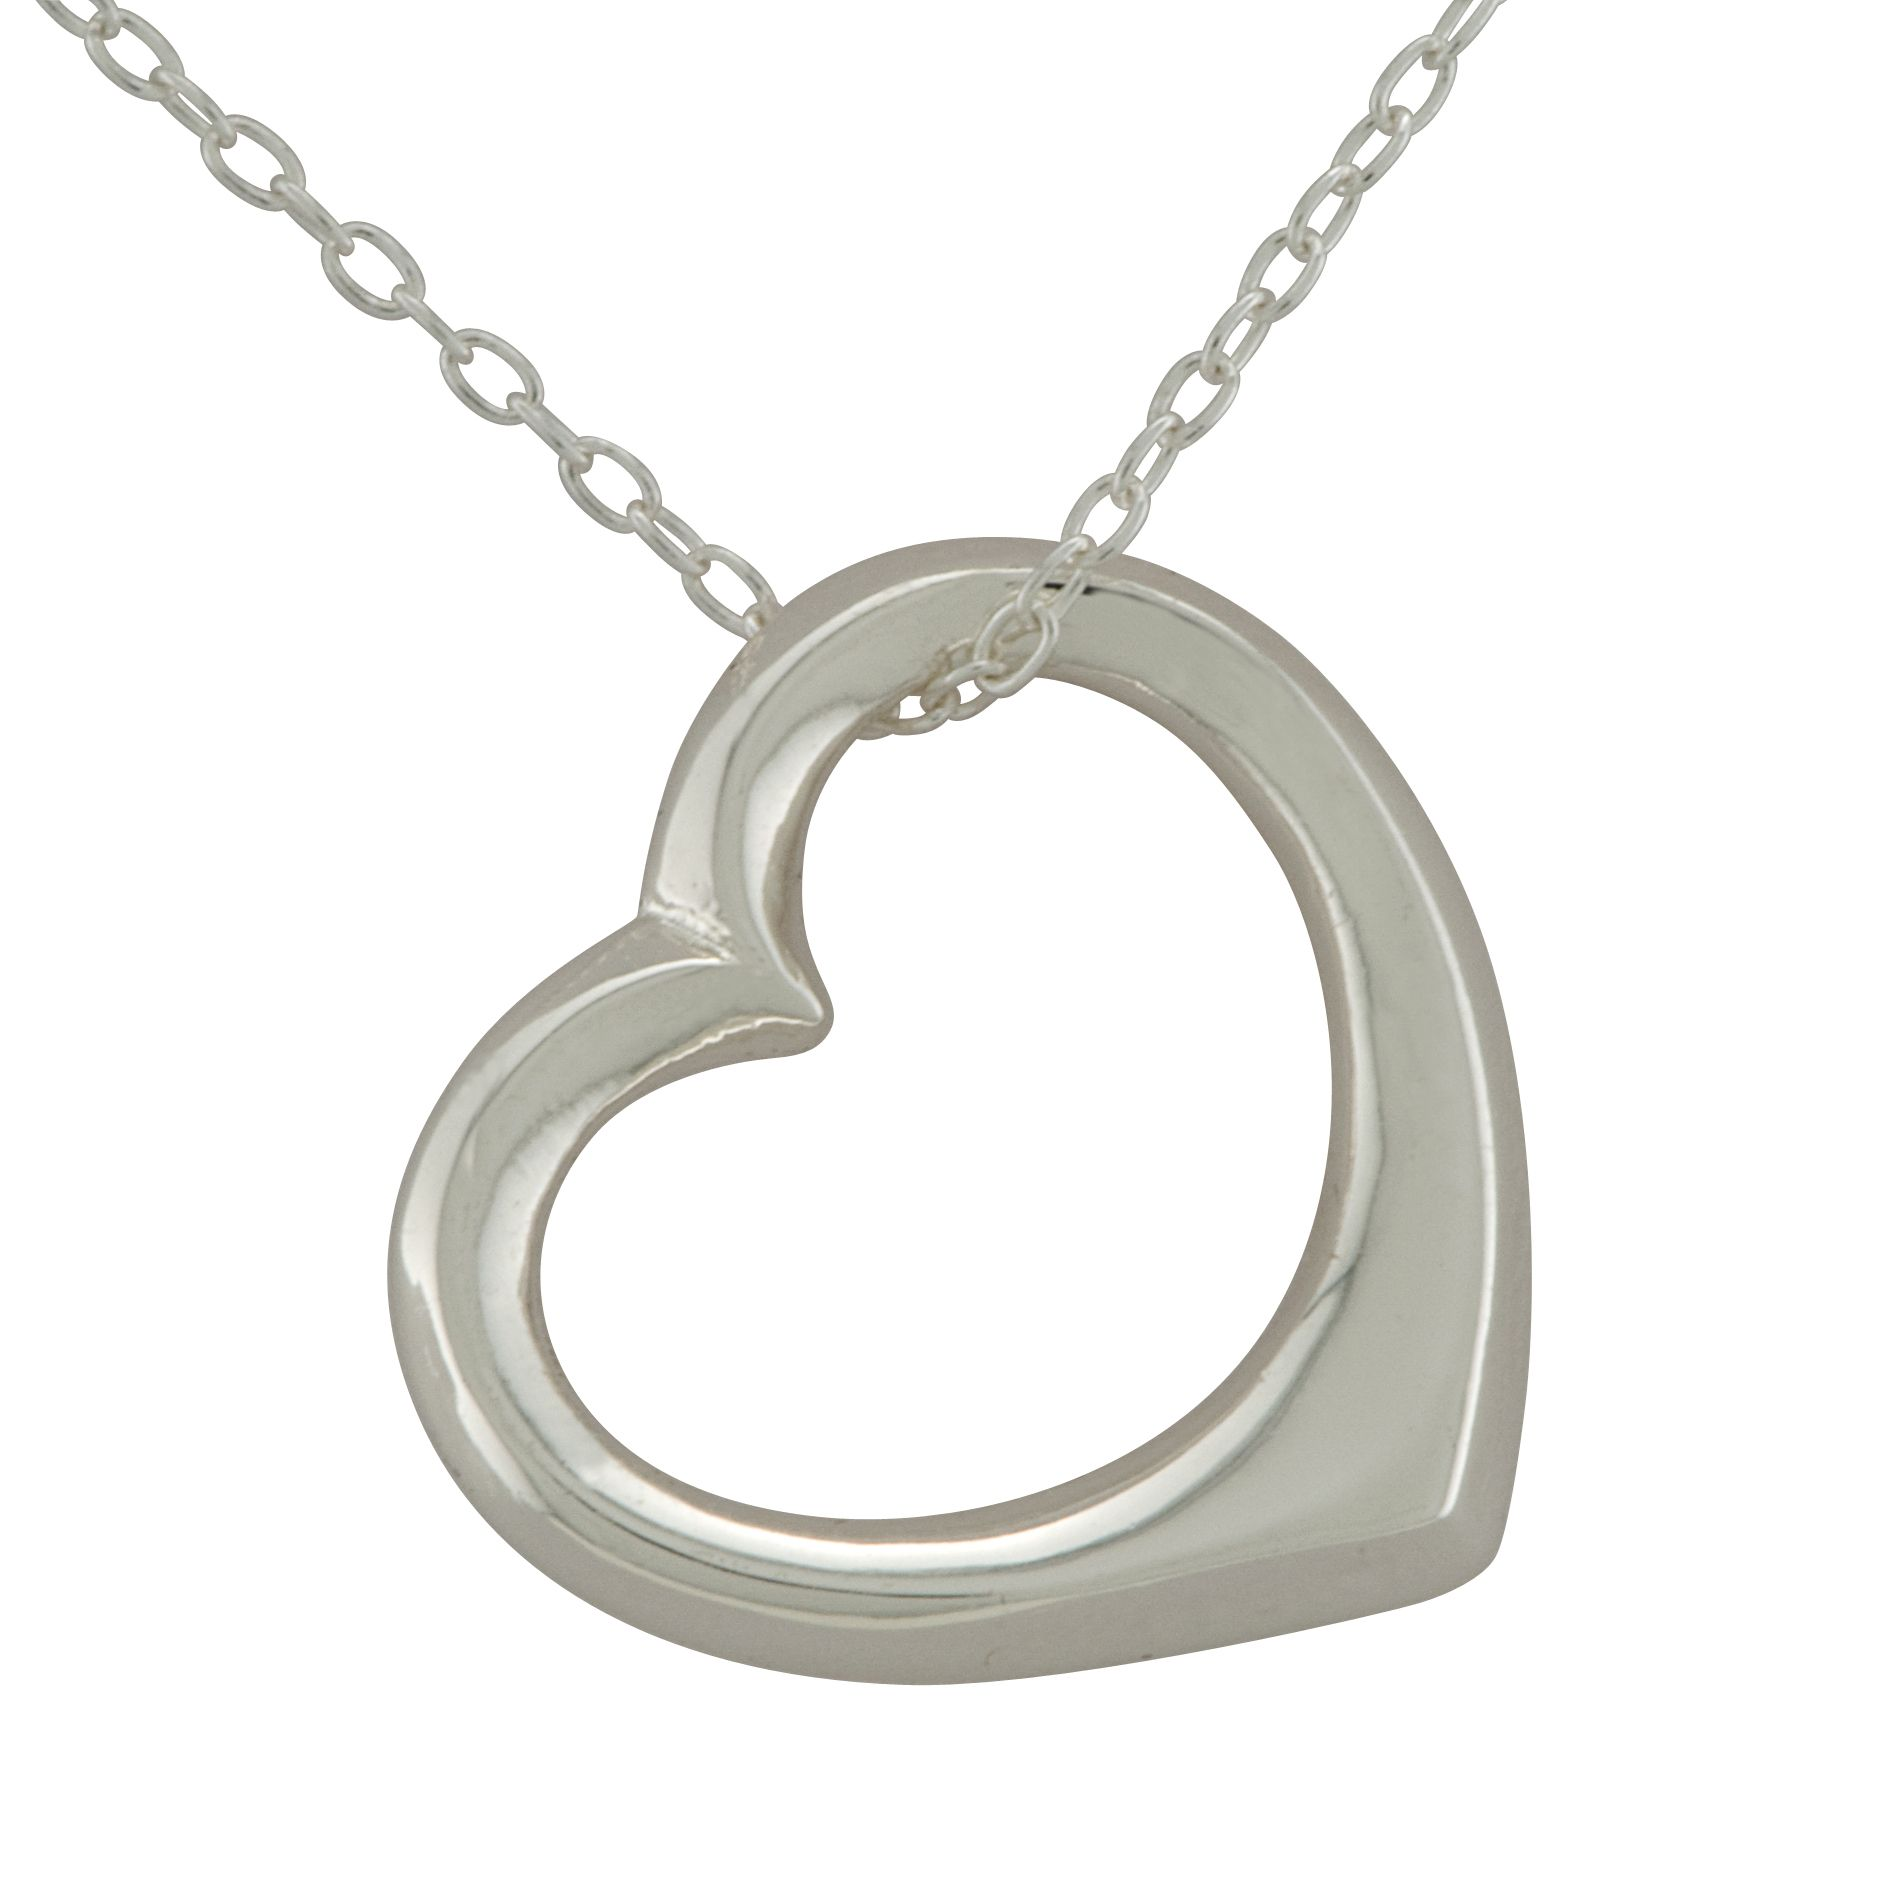 Floating Heart Pendant in Sterling Silver